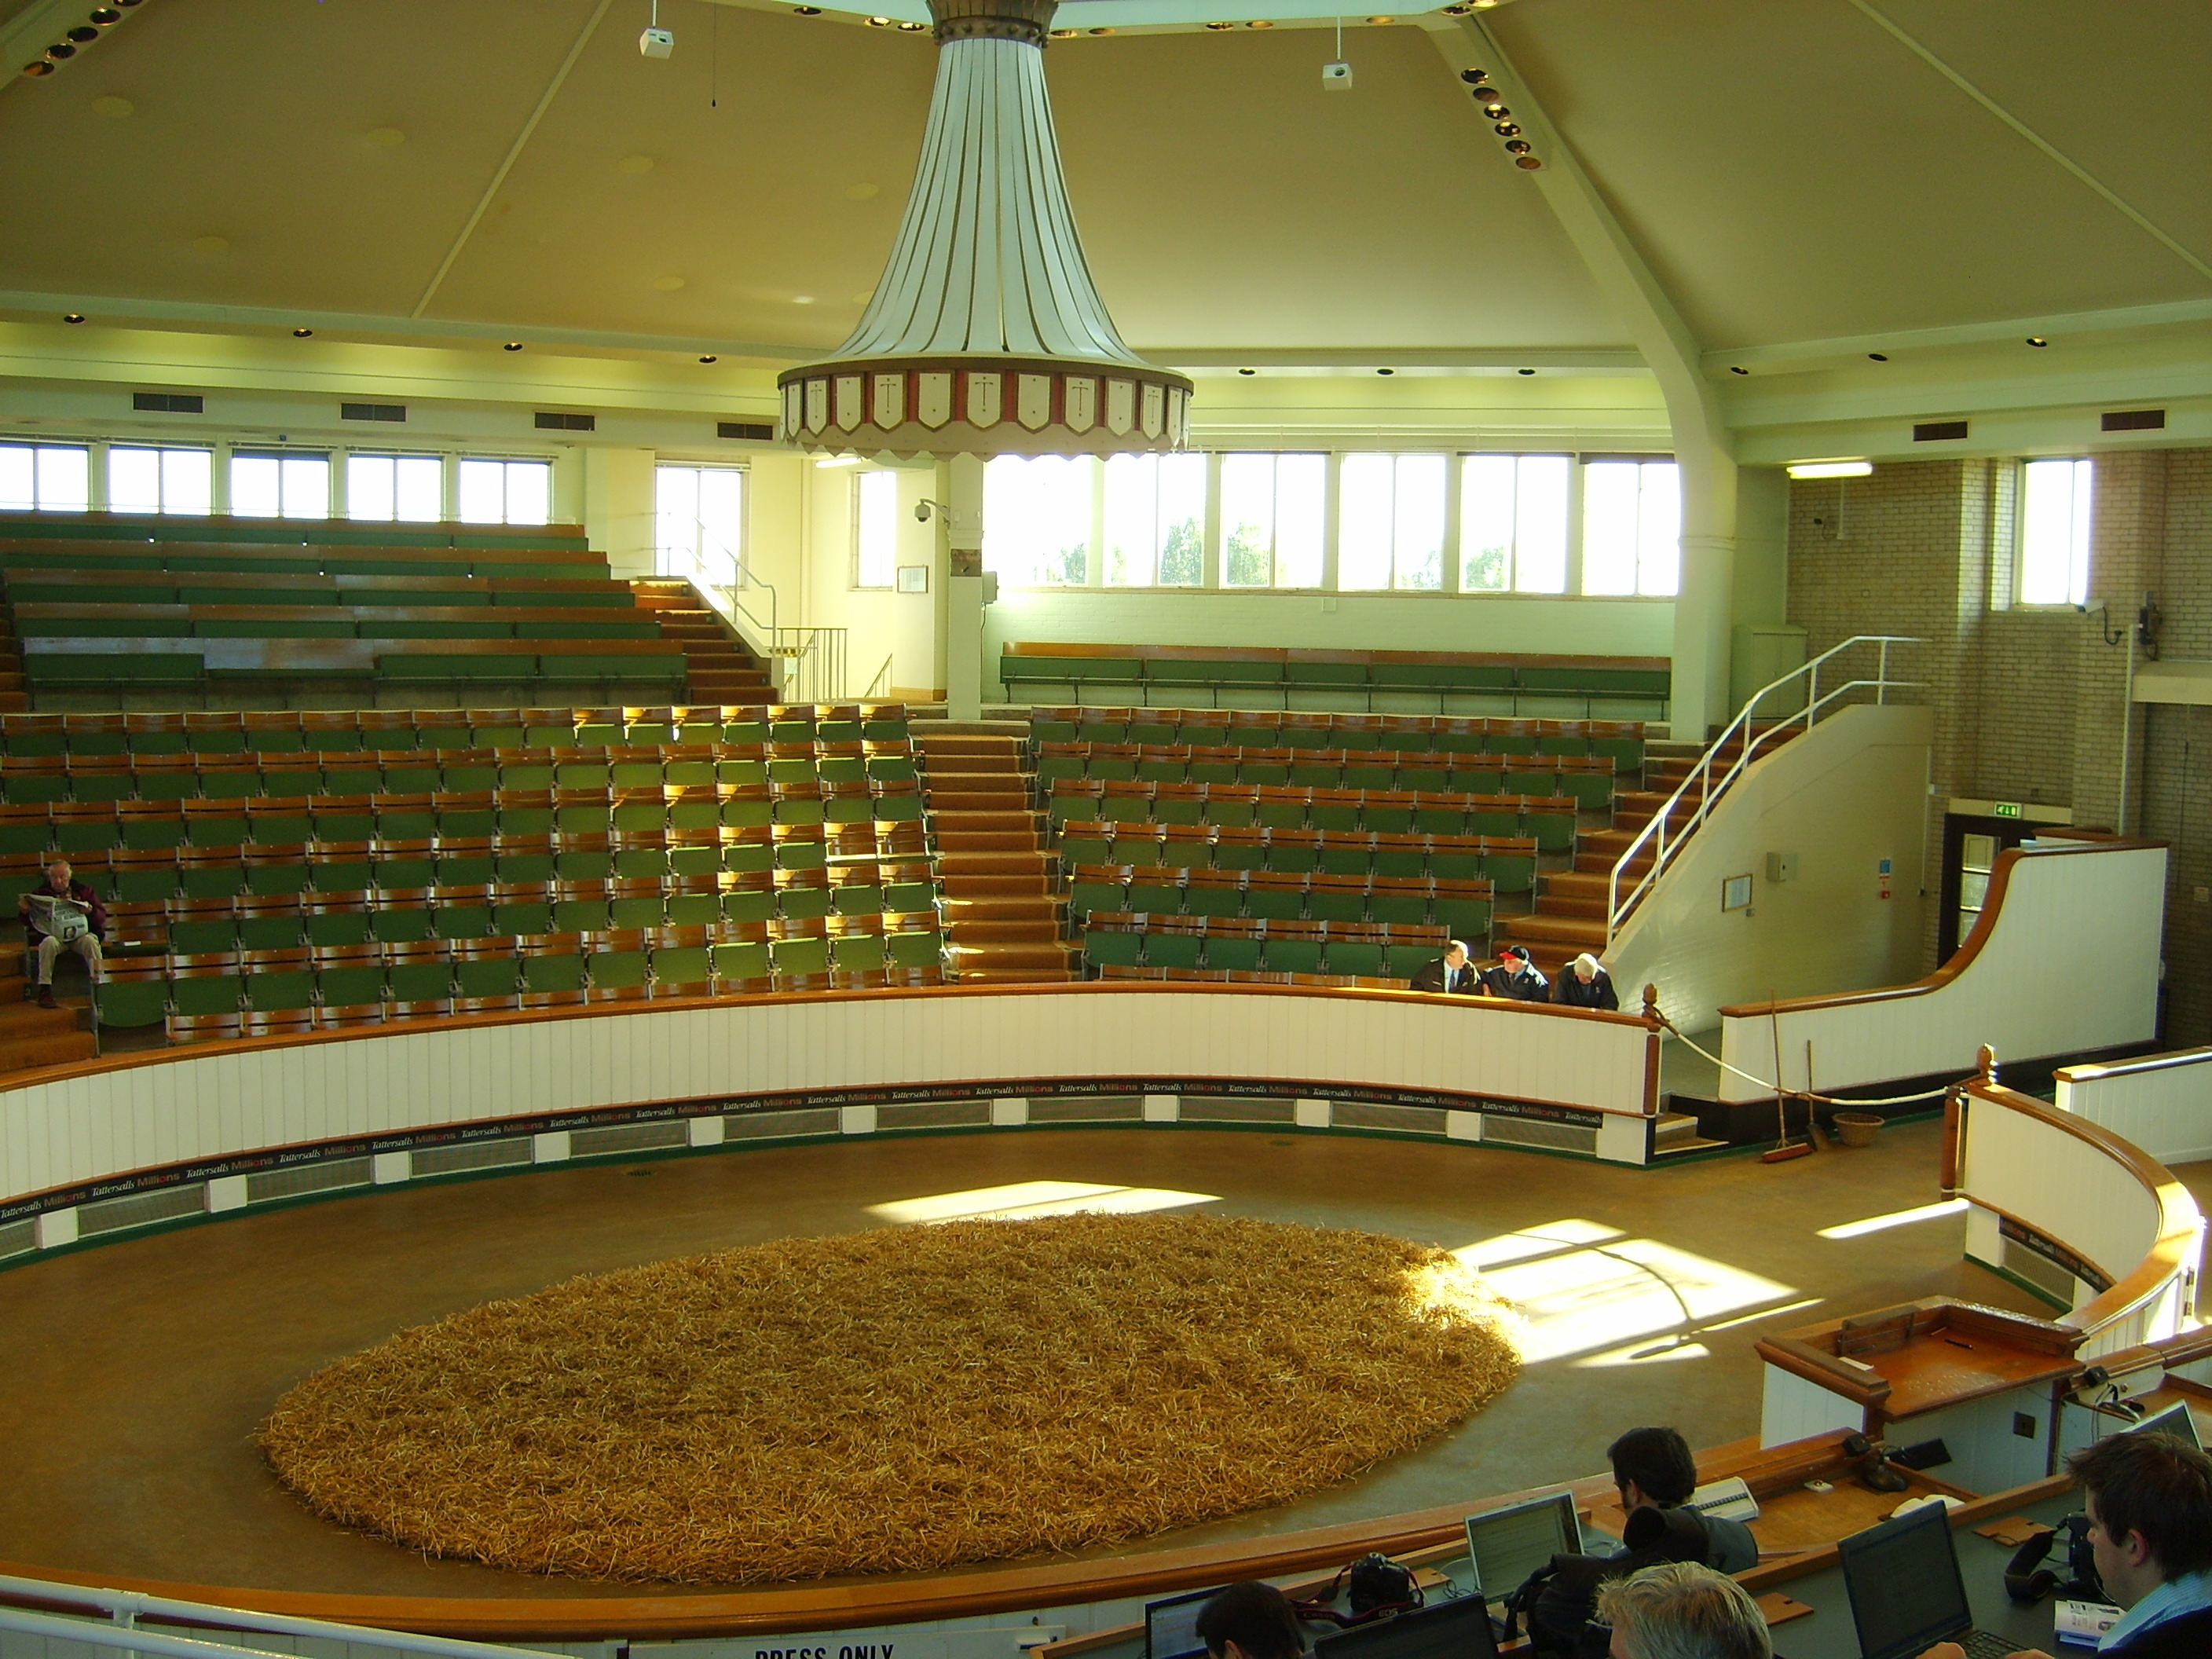 """The Tattersalls auction ring is round, intimate, light, and airy, with a domed top. It is, as one attendee observed, """"a little like sitting inside a teapot."""" Unlike at major Thoroughbred sales in the United States, where the horses generally are held standing in the center of a small auction area, at Tattersalls the horses are walked around the path so potential buyers can watch them while bidding."""